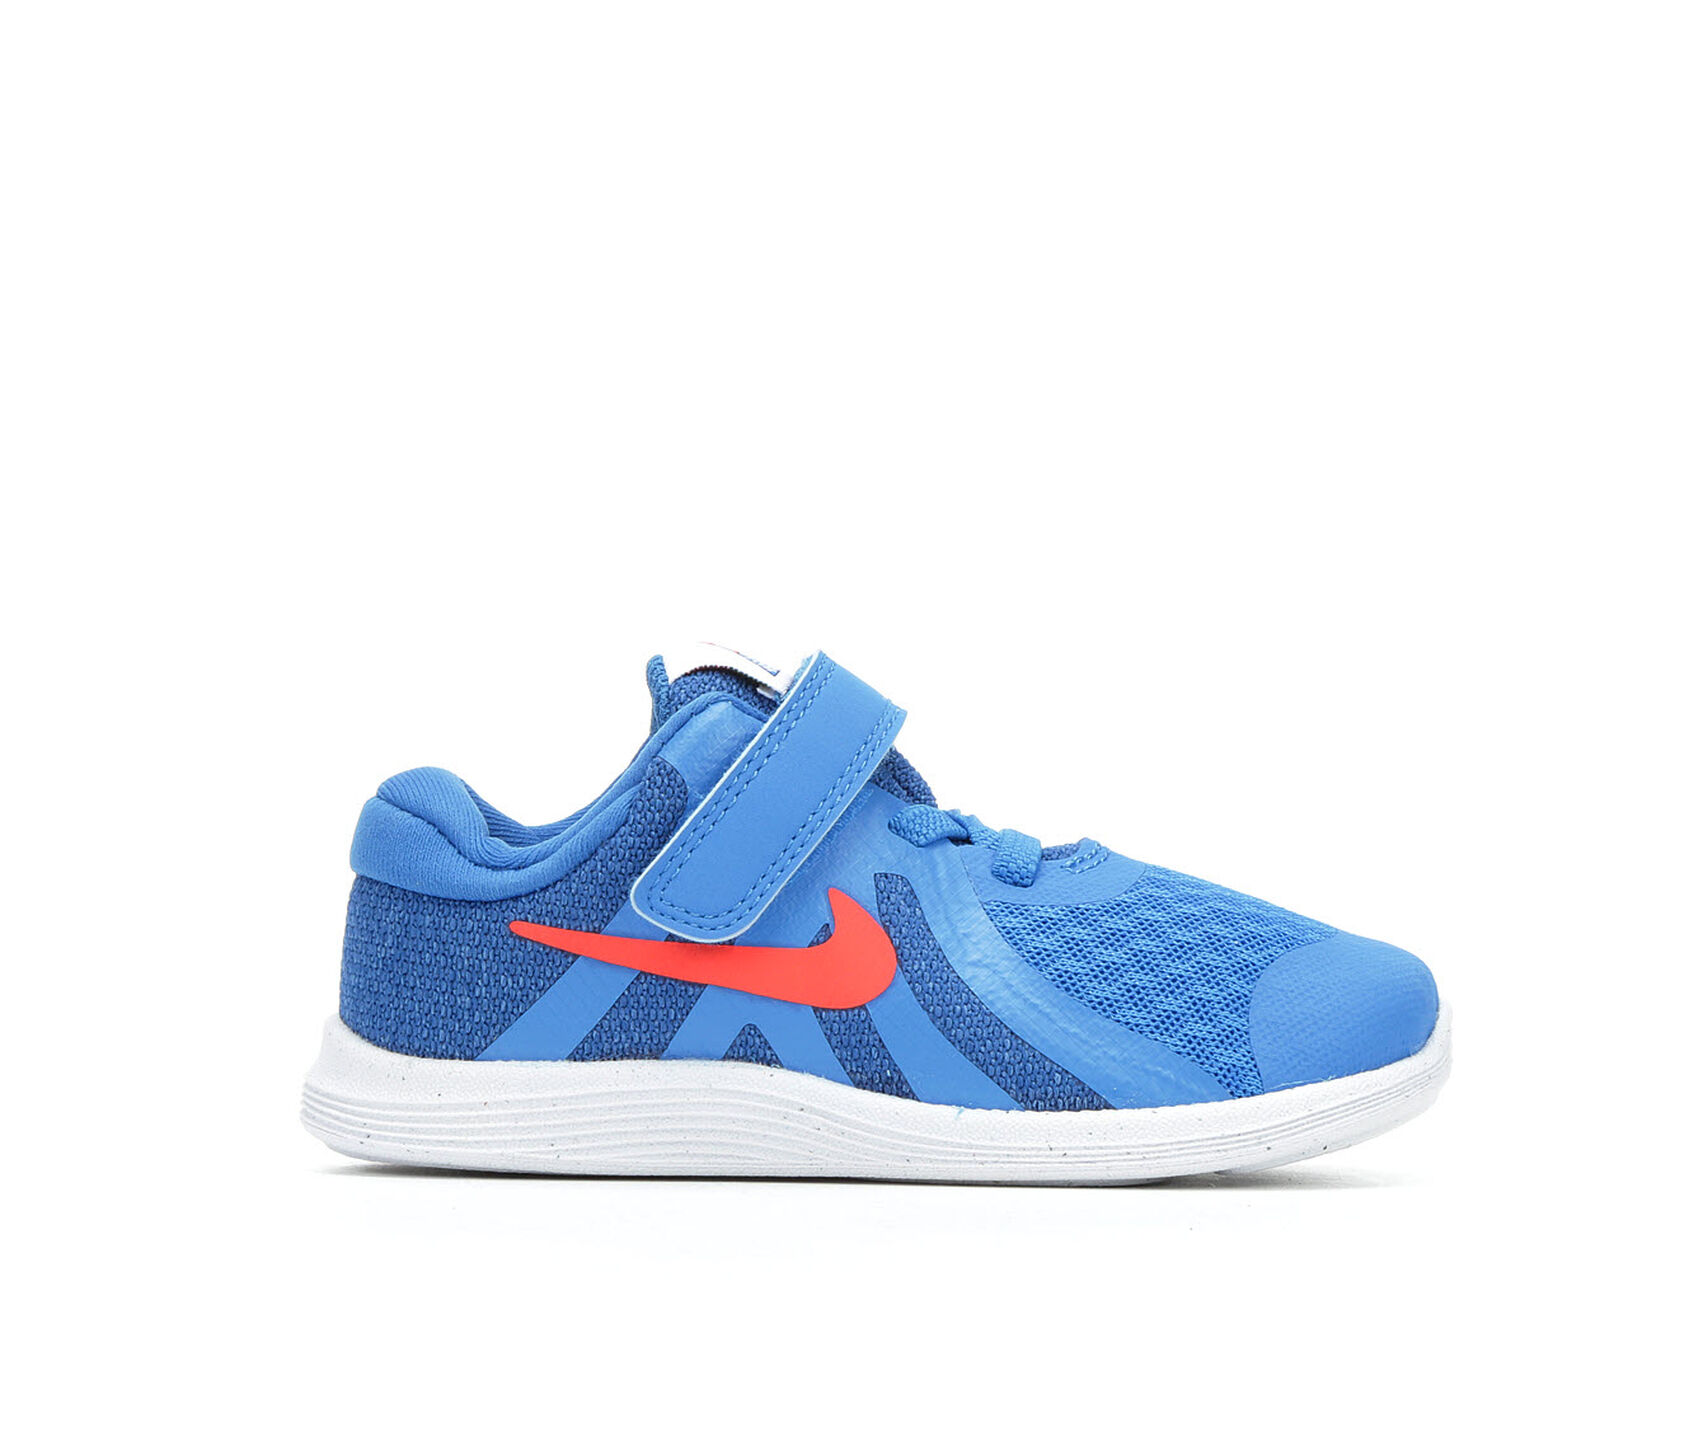 eed1a4d1e99 Boys  Nike Infant   Toddler Revolution 4 Running Shoes